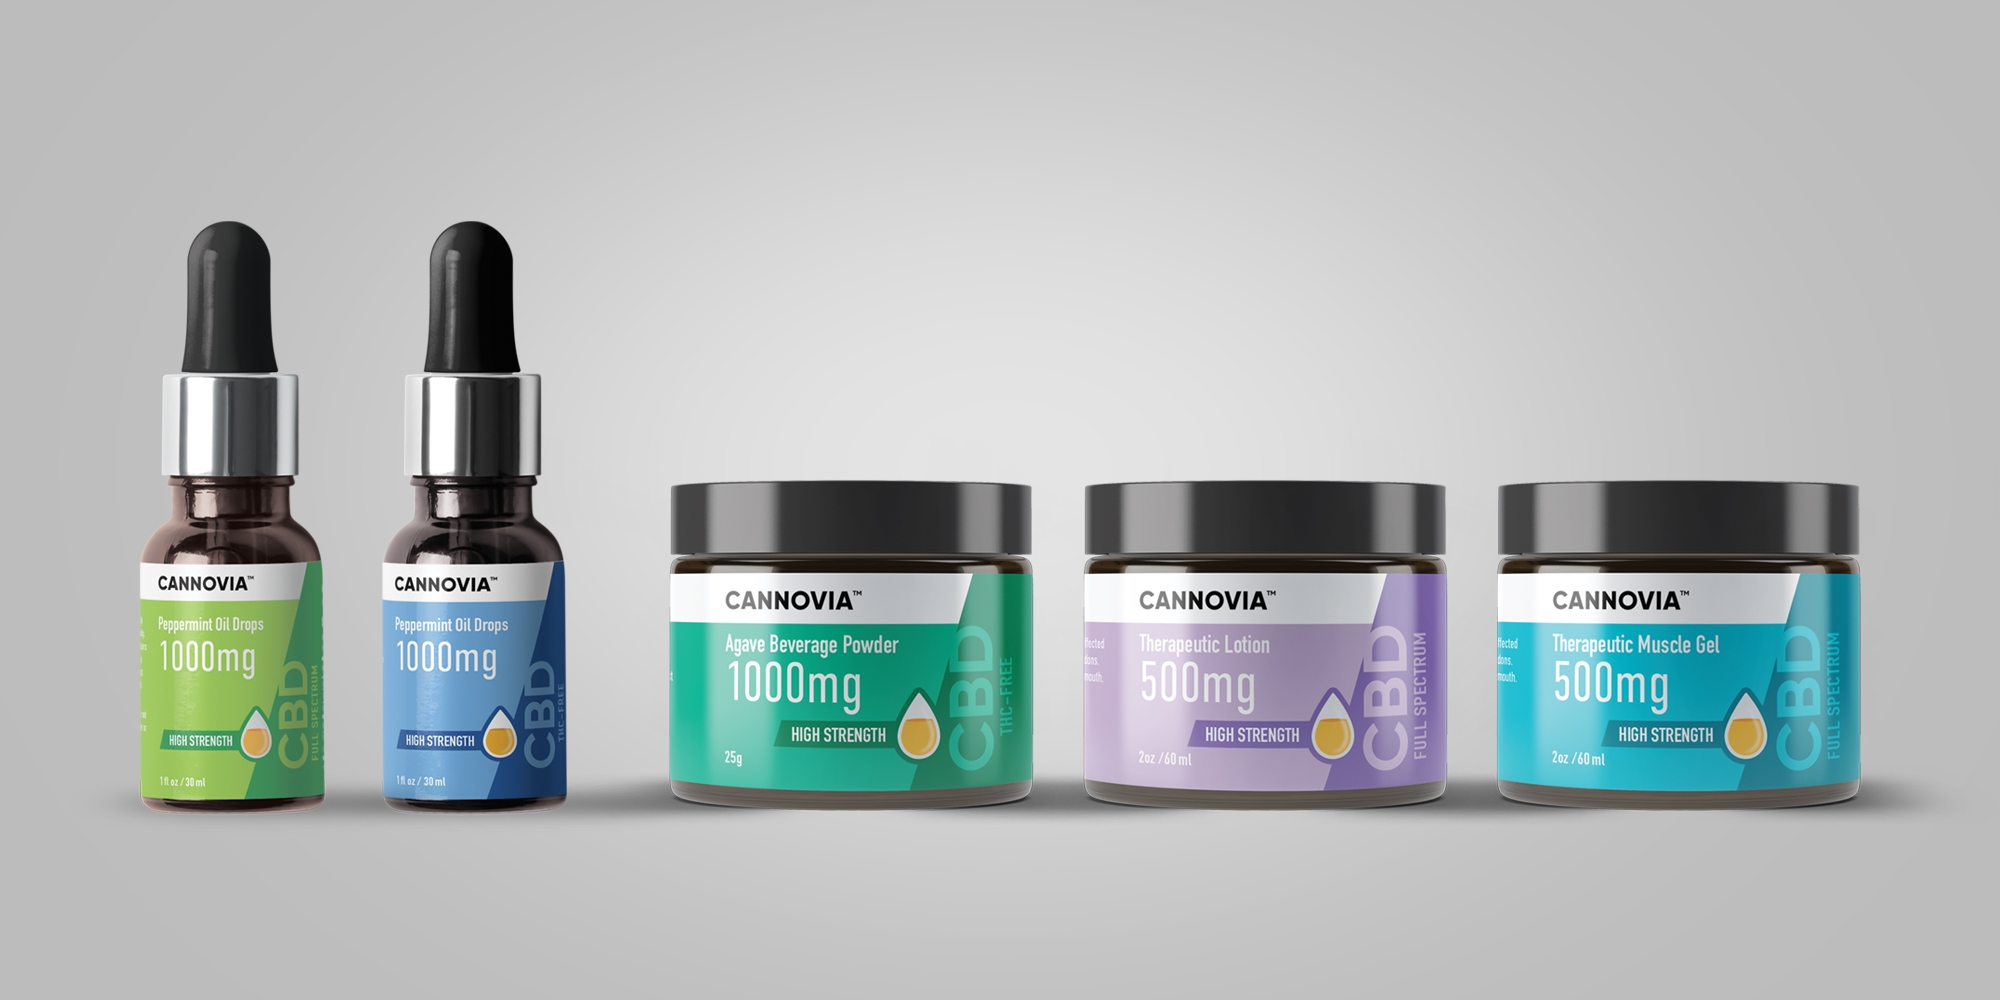 Website_Cannovia_Packaging.jpg#asset:710:url